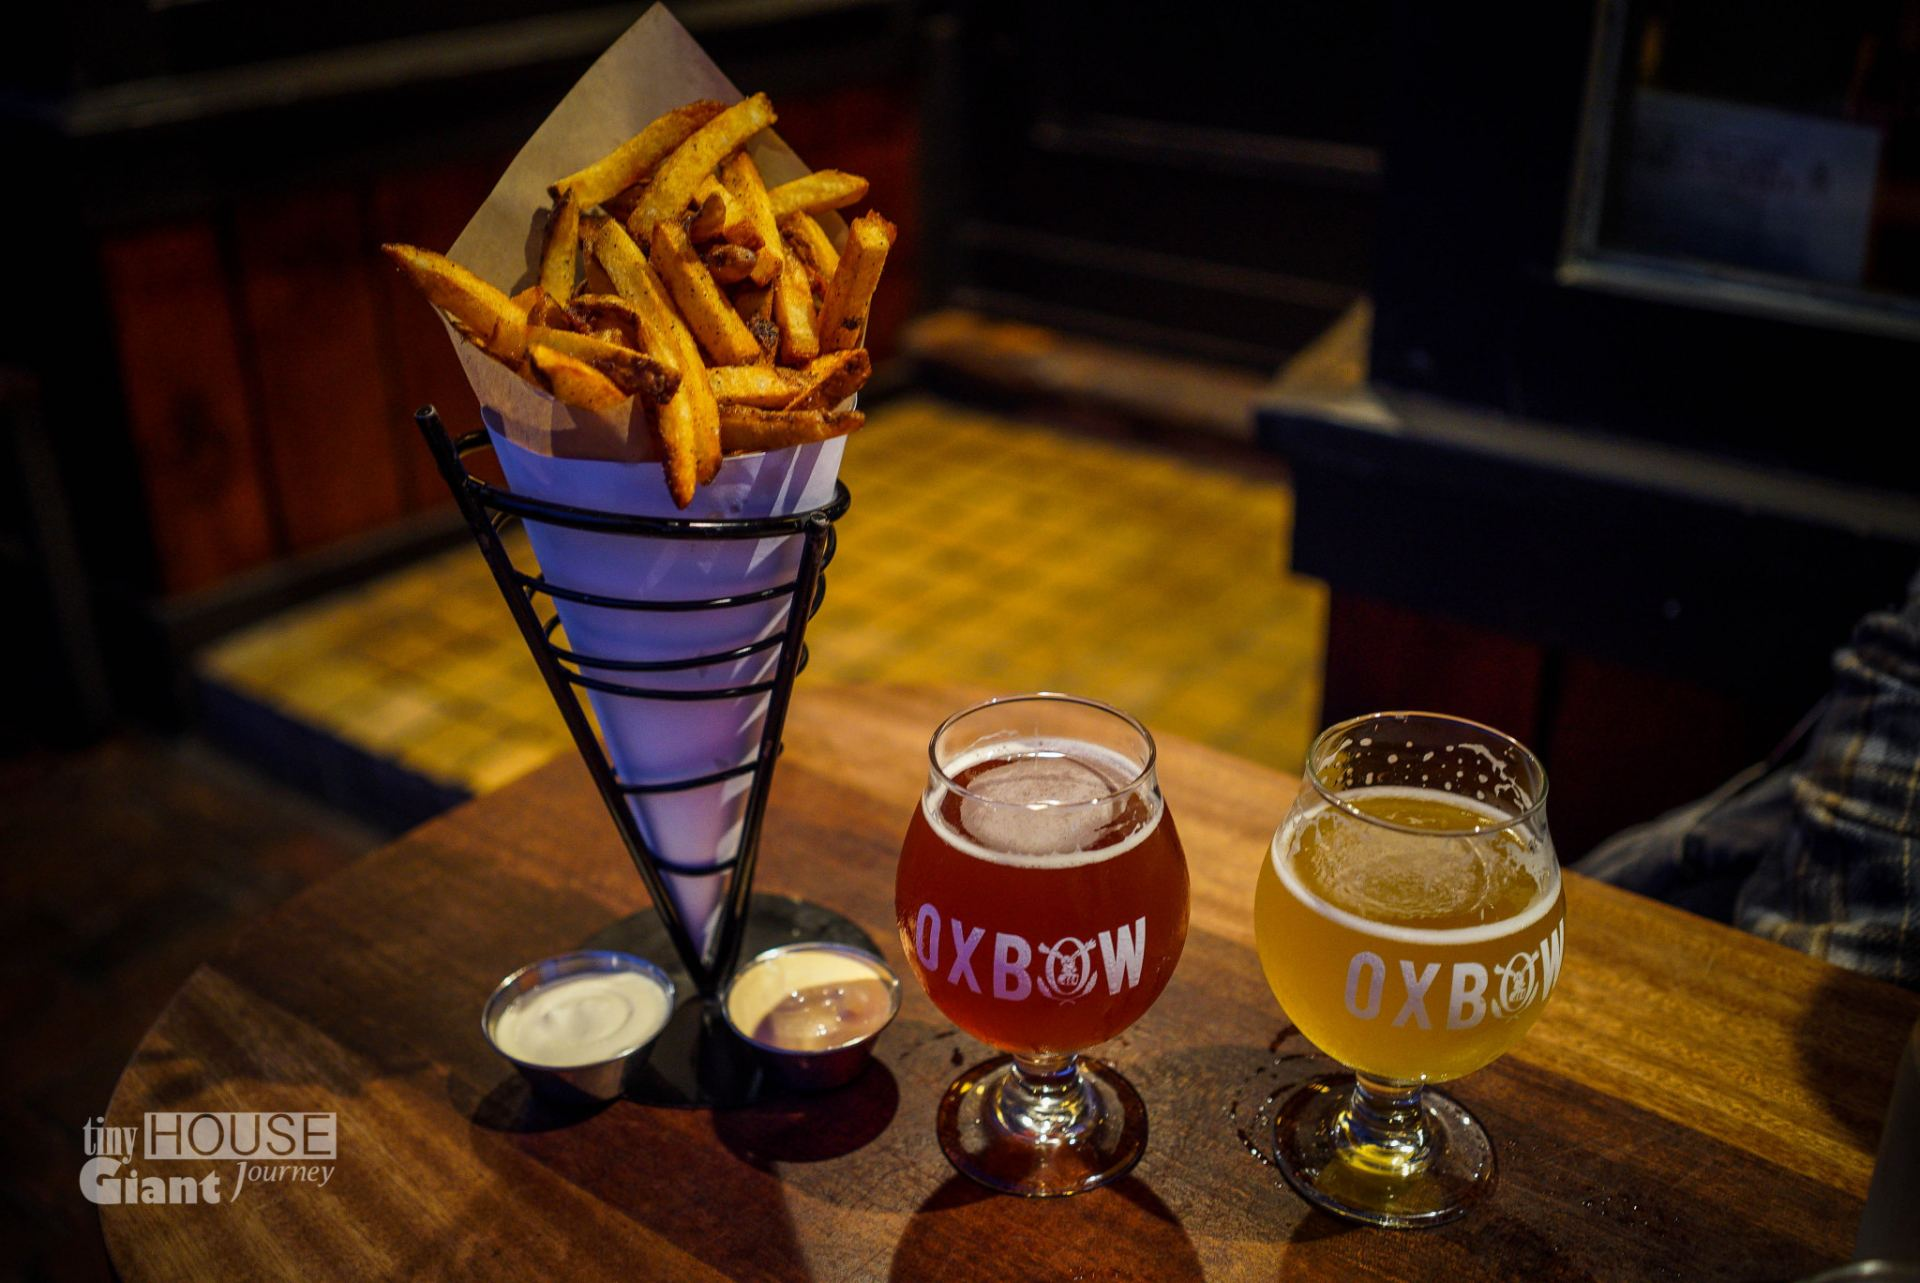 Fries coated in duck fat & local beer